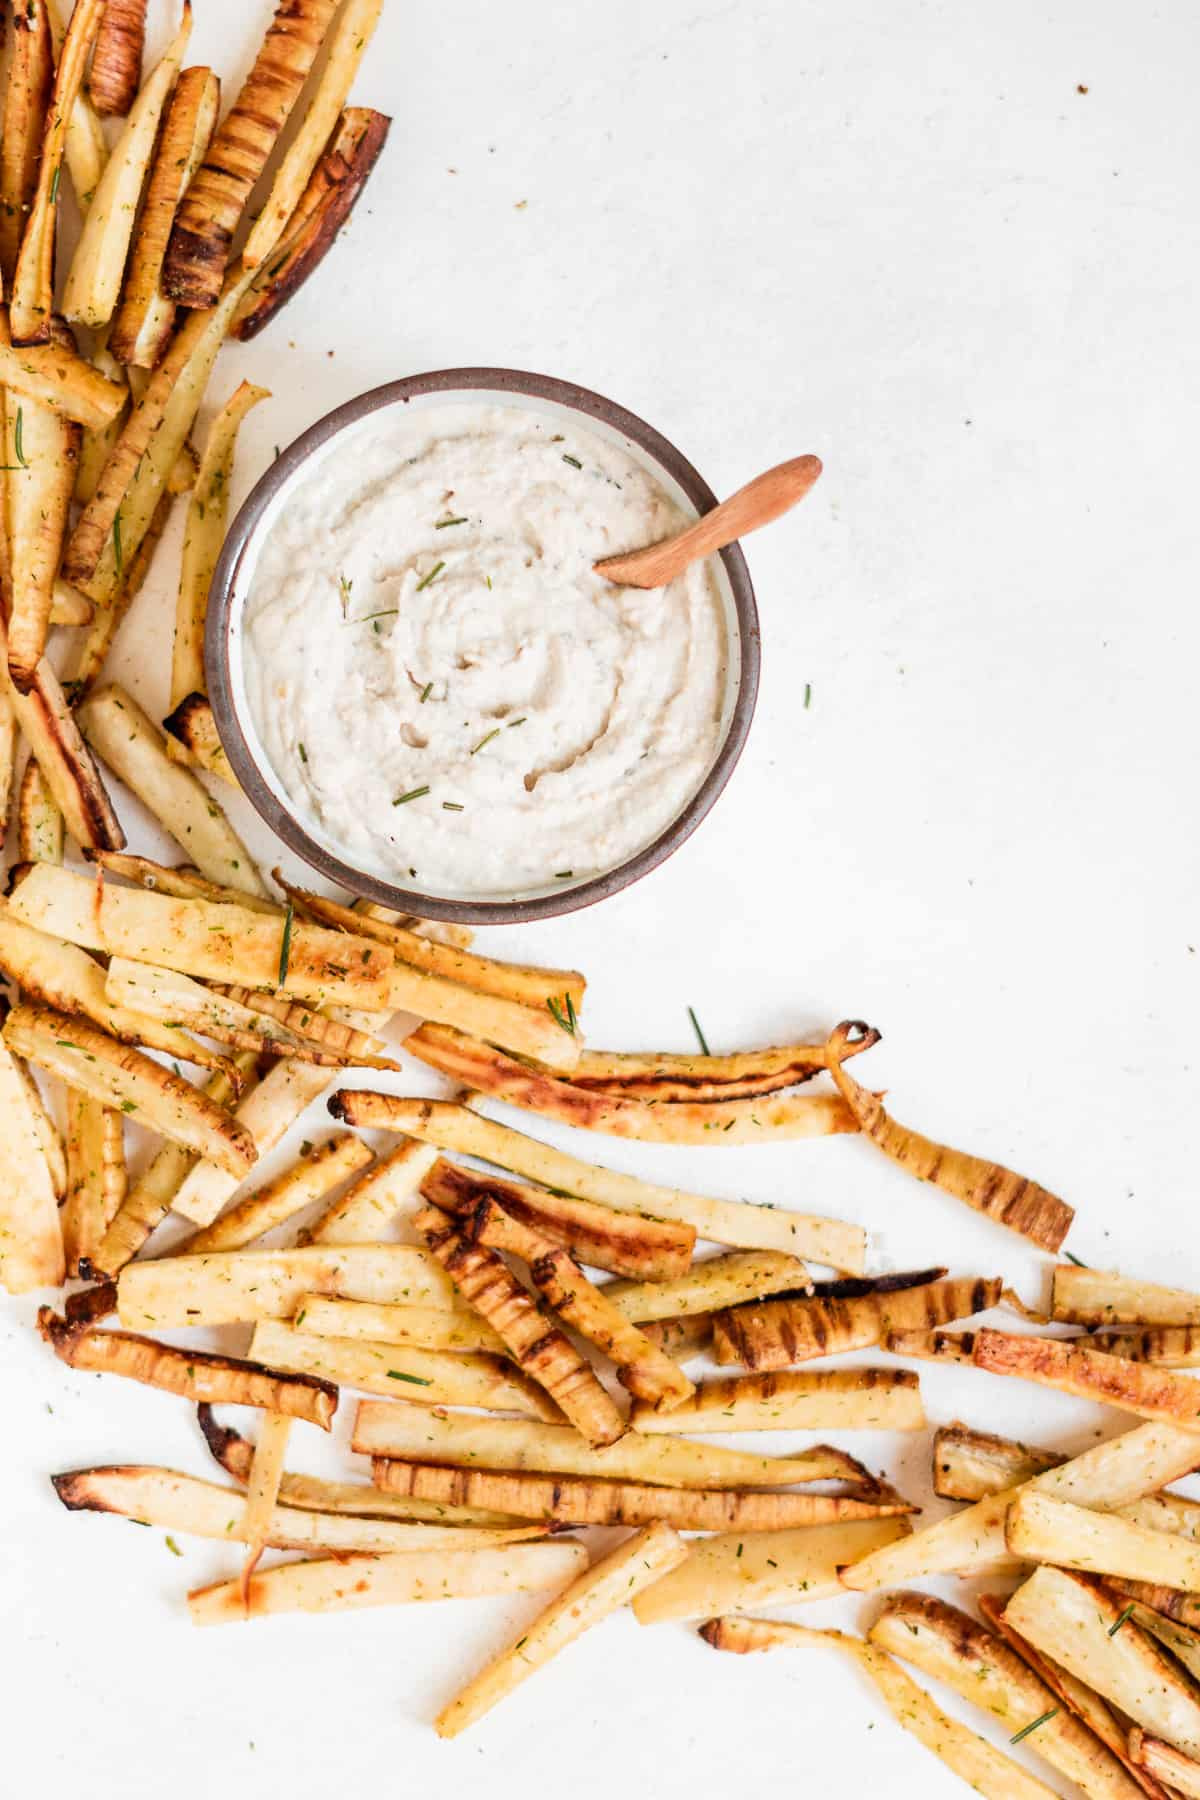 Bowl of aioli dip with parsnip fries on the surface.